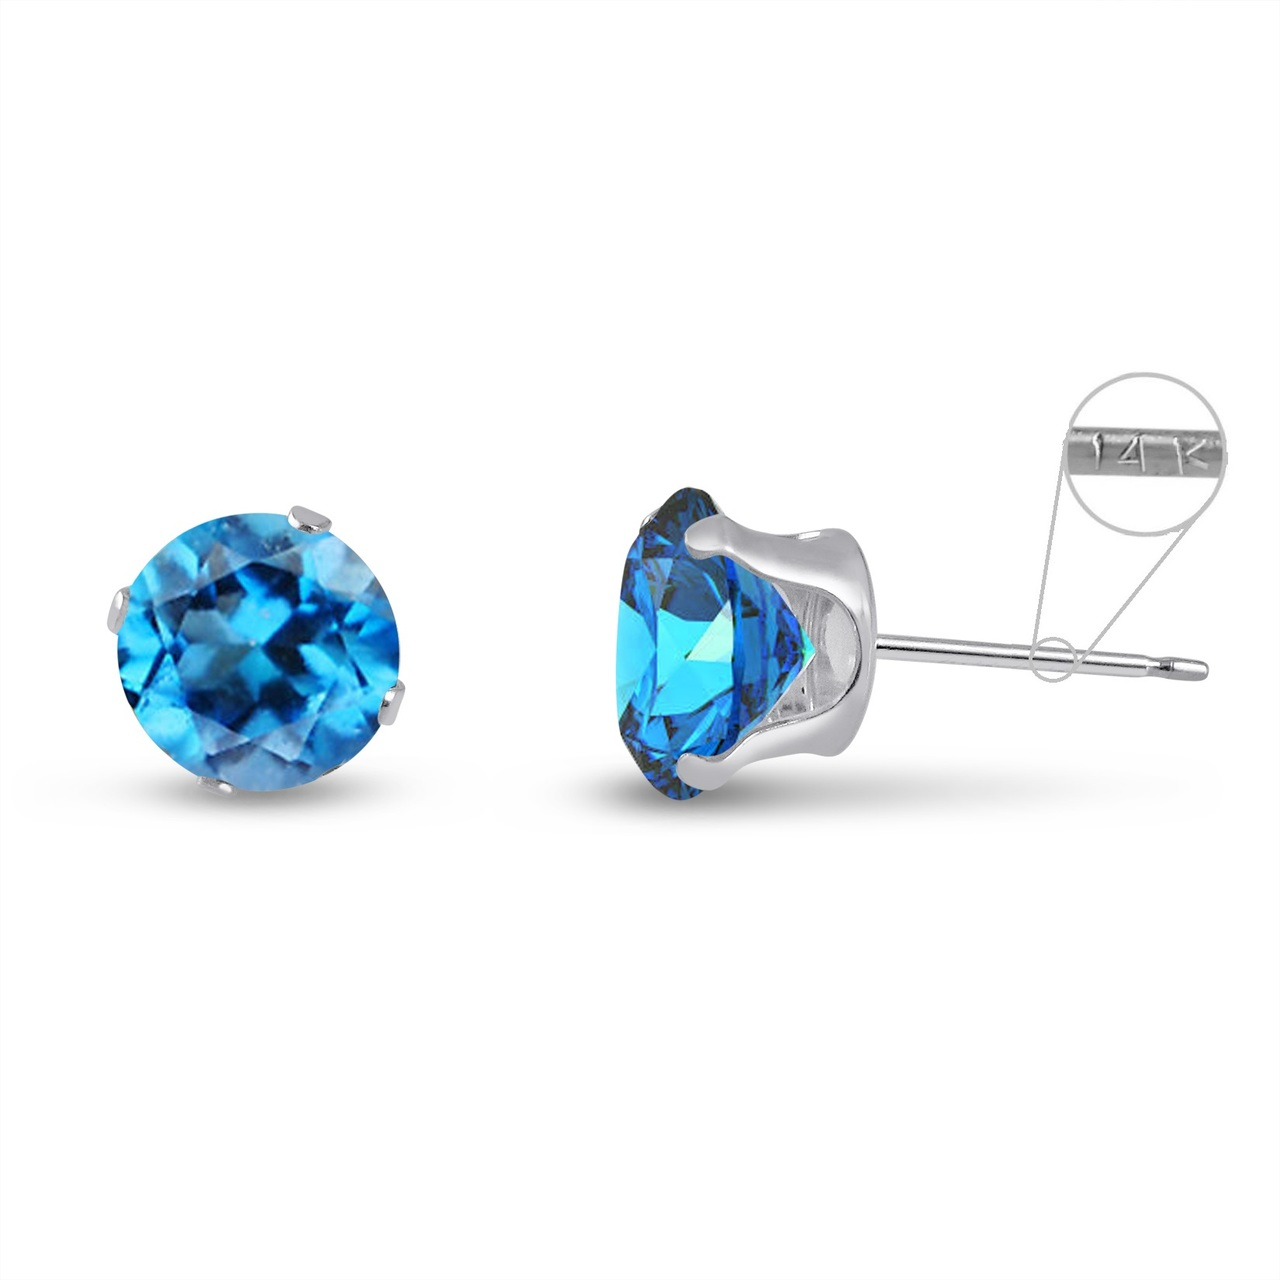 earrings stud topaz ekm oblong gemstone sterling asp silver in blue p